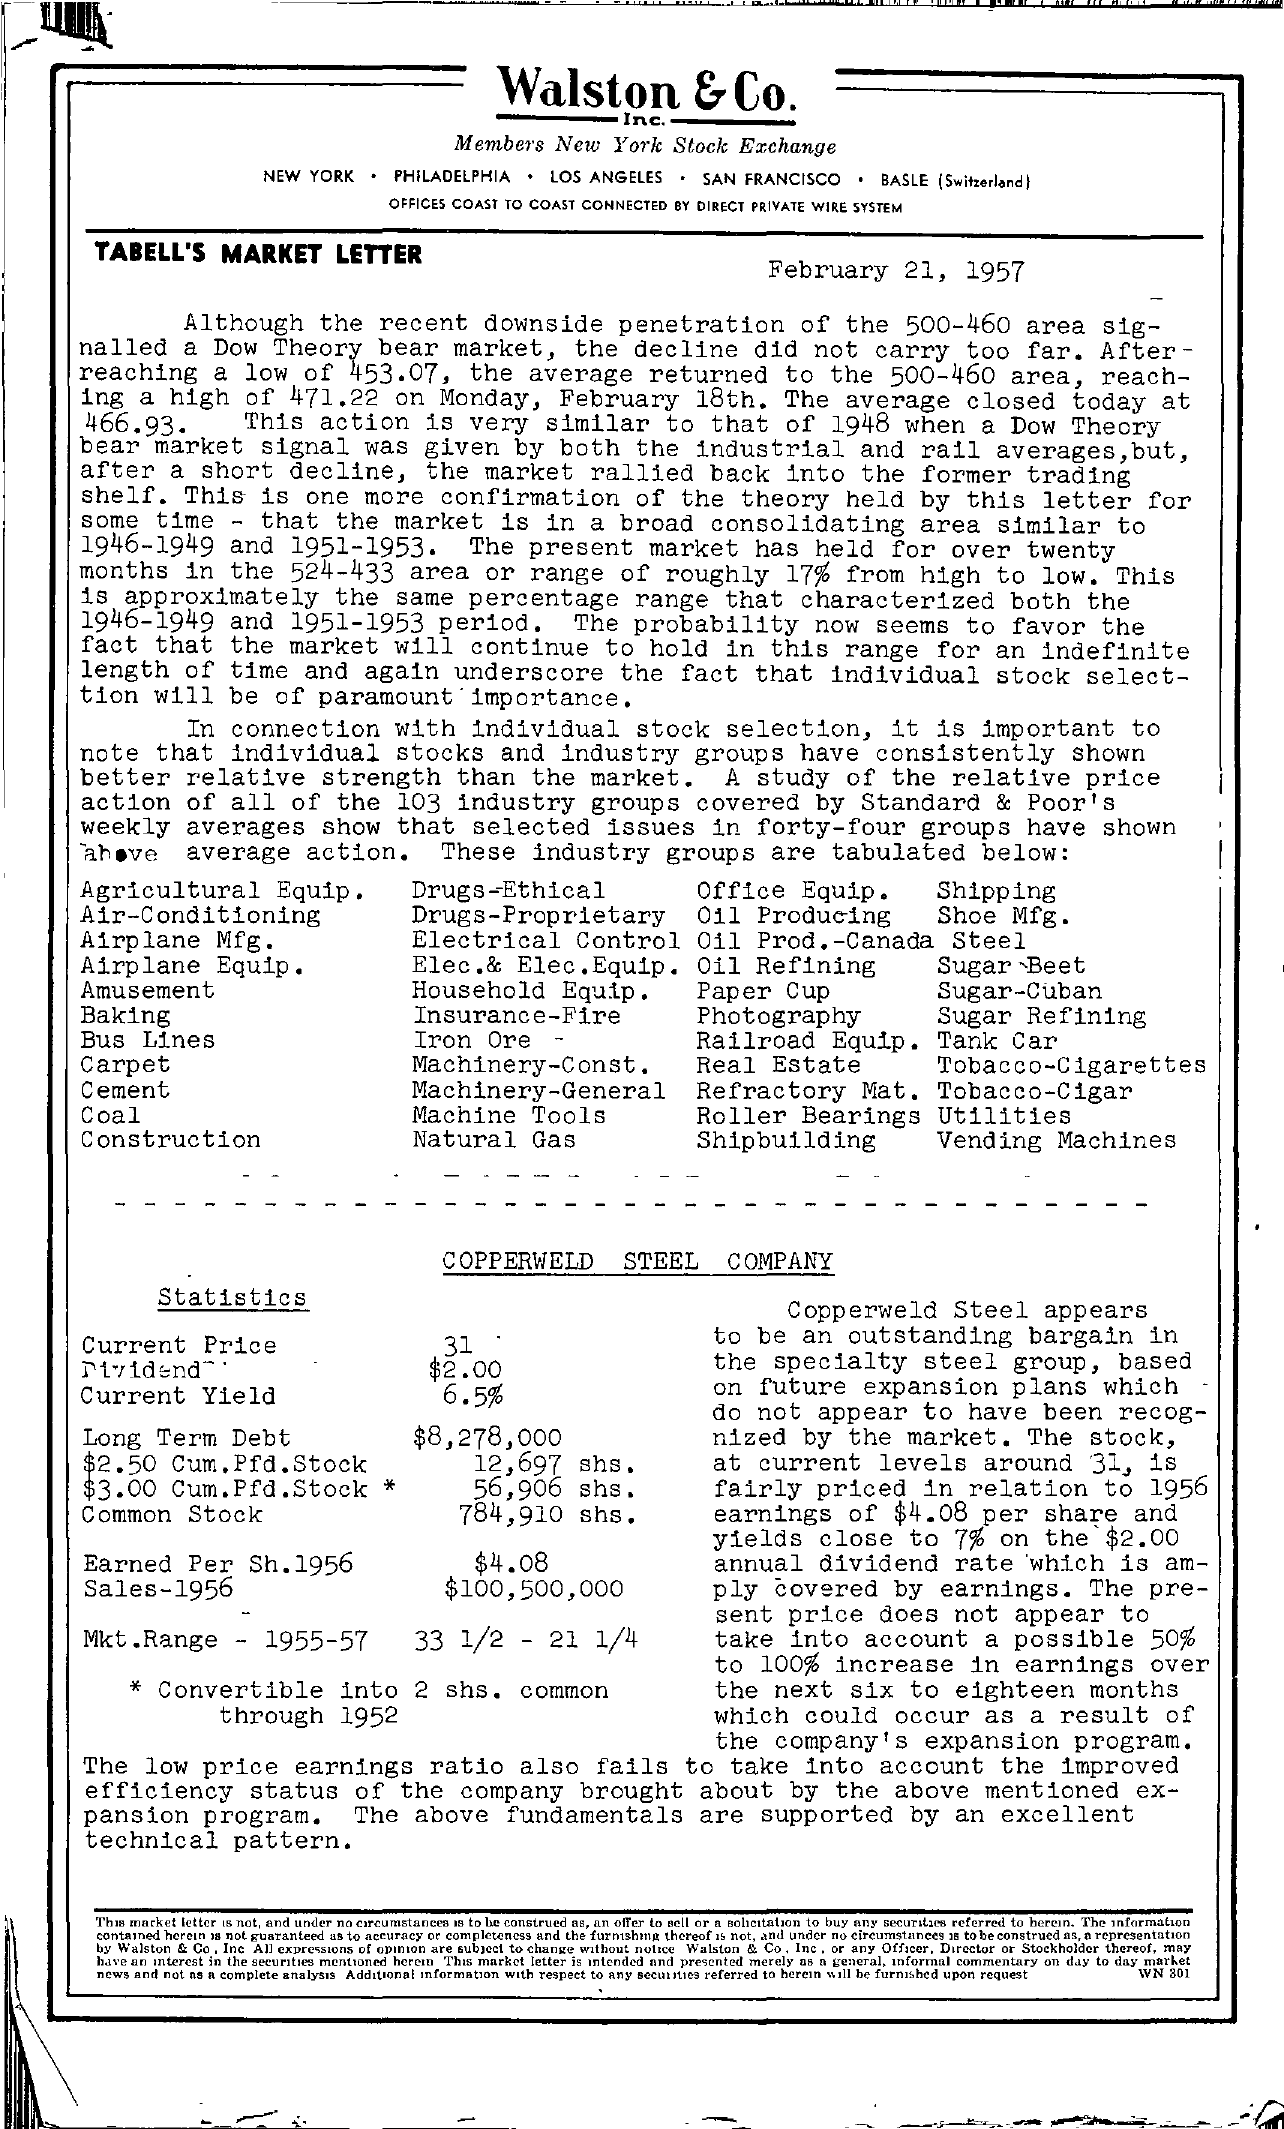 Tabell's Market Letter - February 21, 1957 page 1